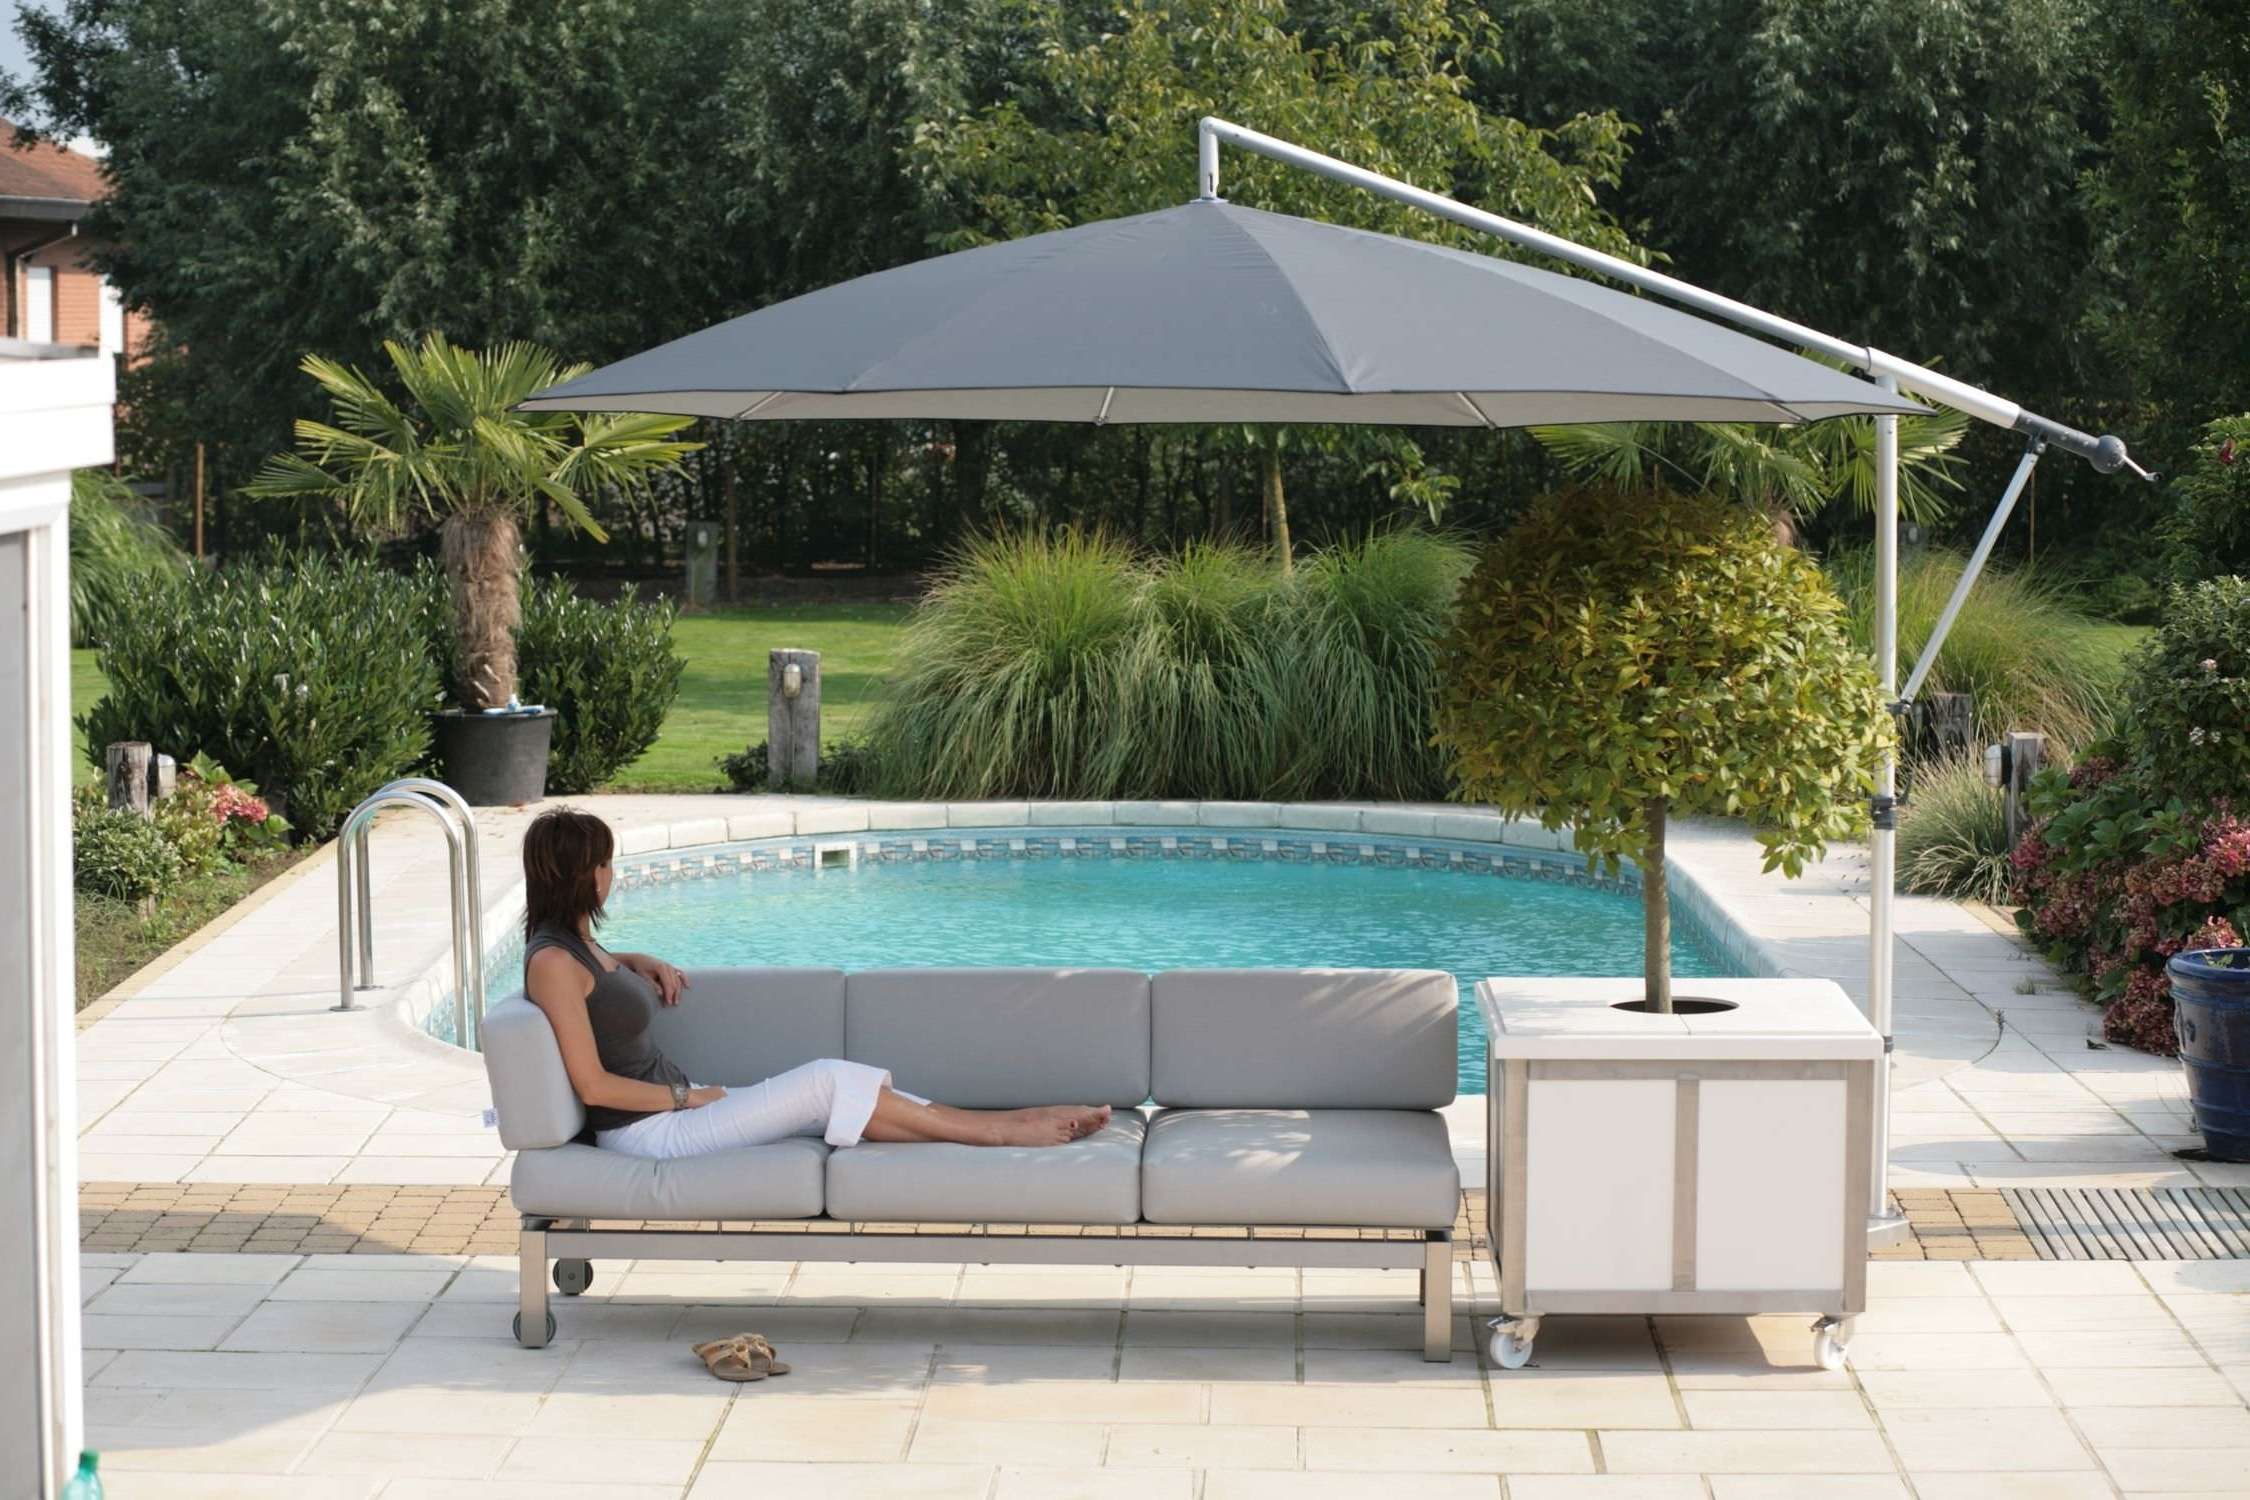 Cheap Patio Umbrellas For Widely Used Offset Sun Umbrella – Best Outdoor Patio Umbrella (View 6 of 20)